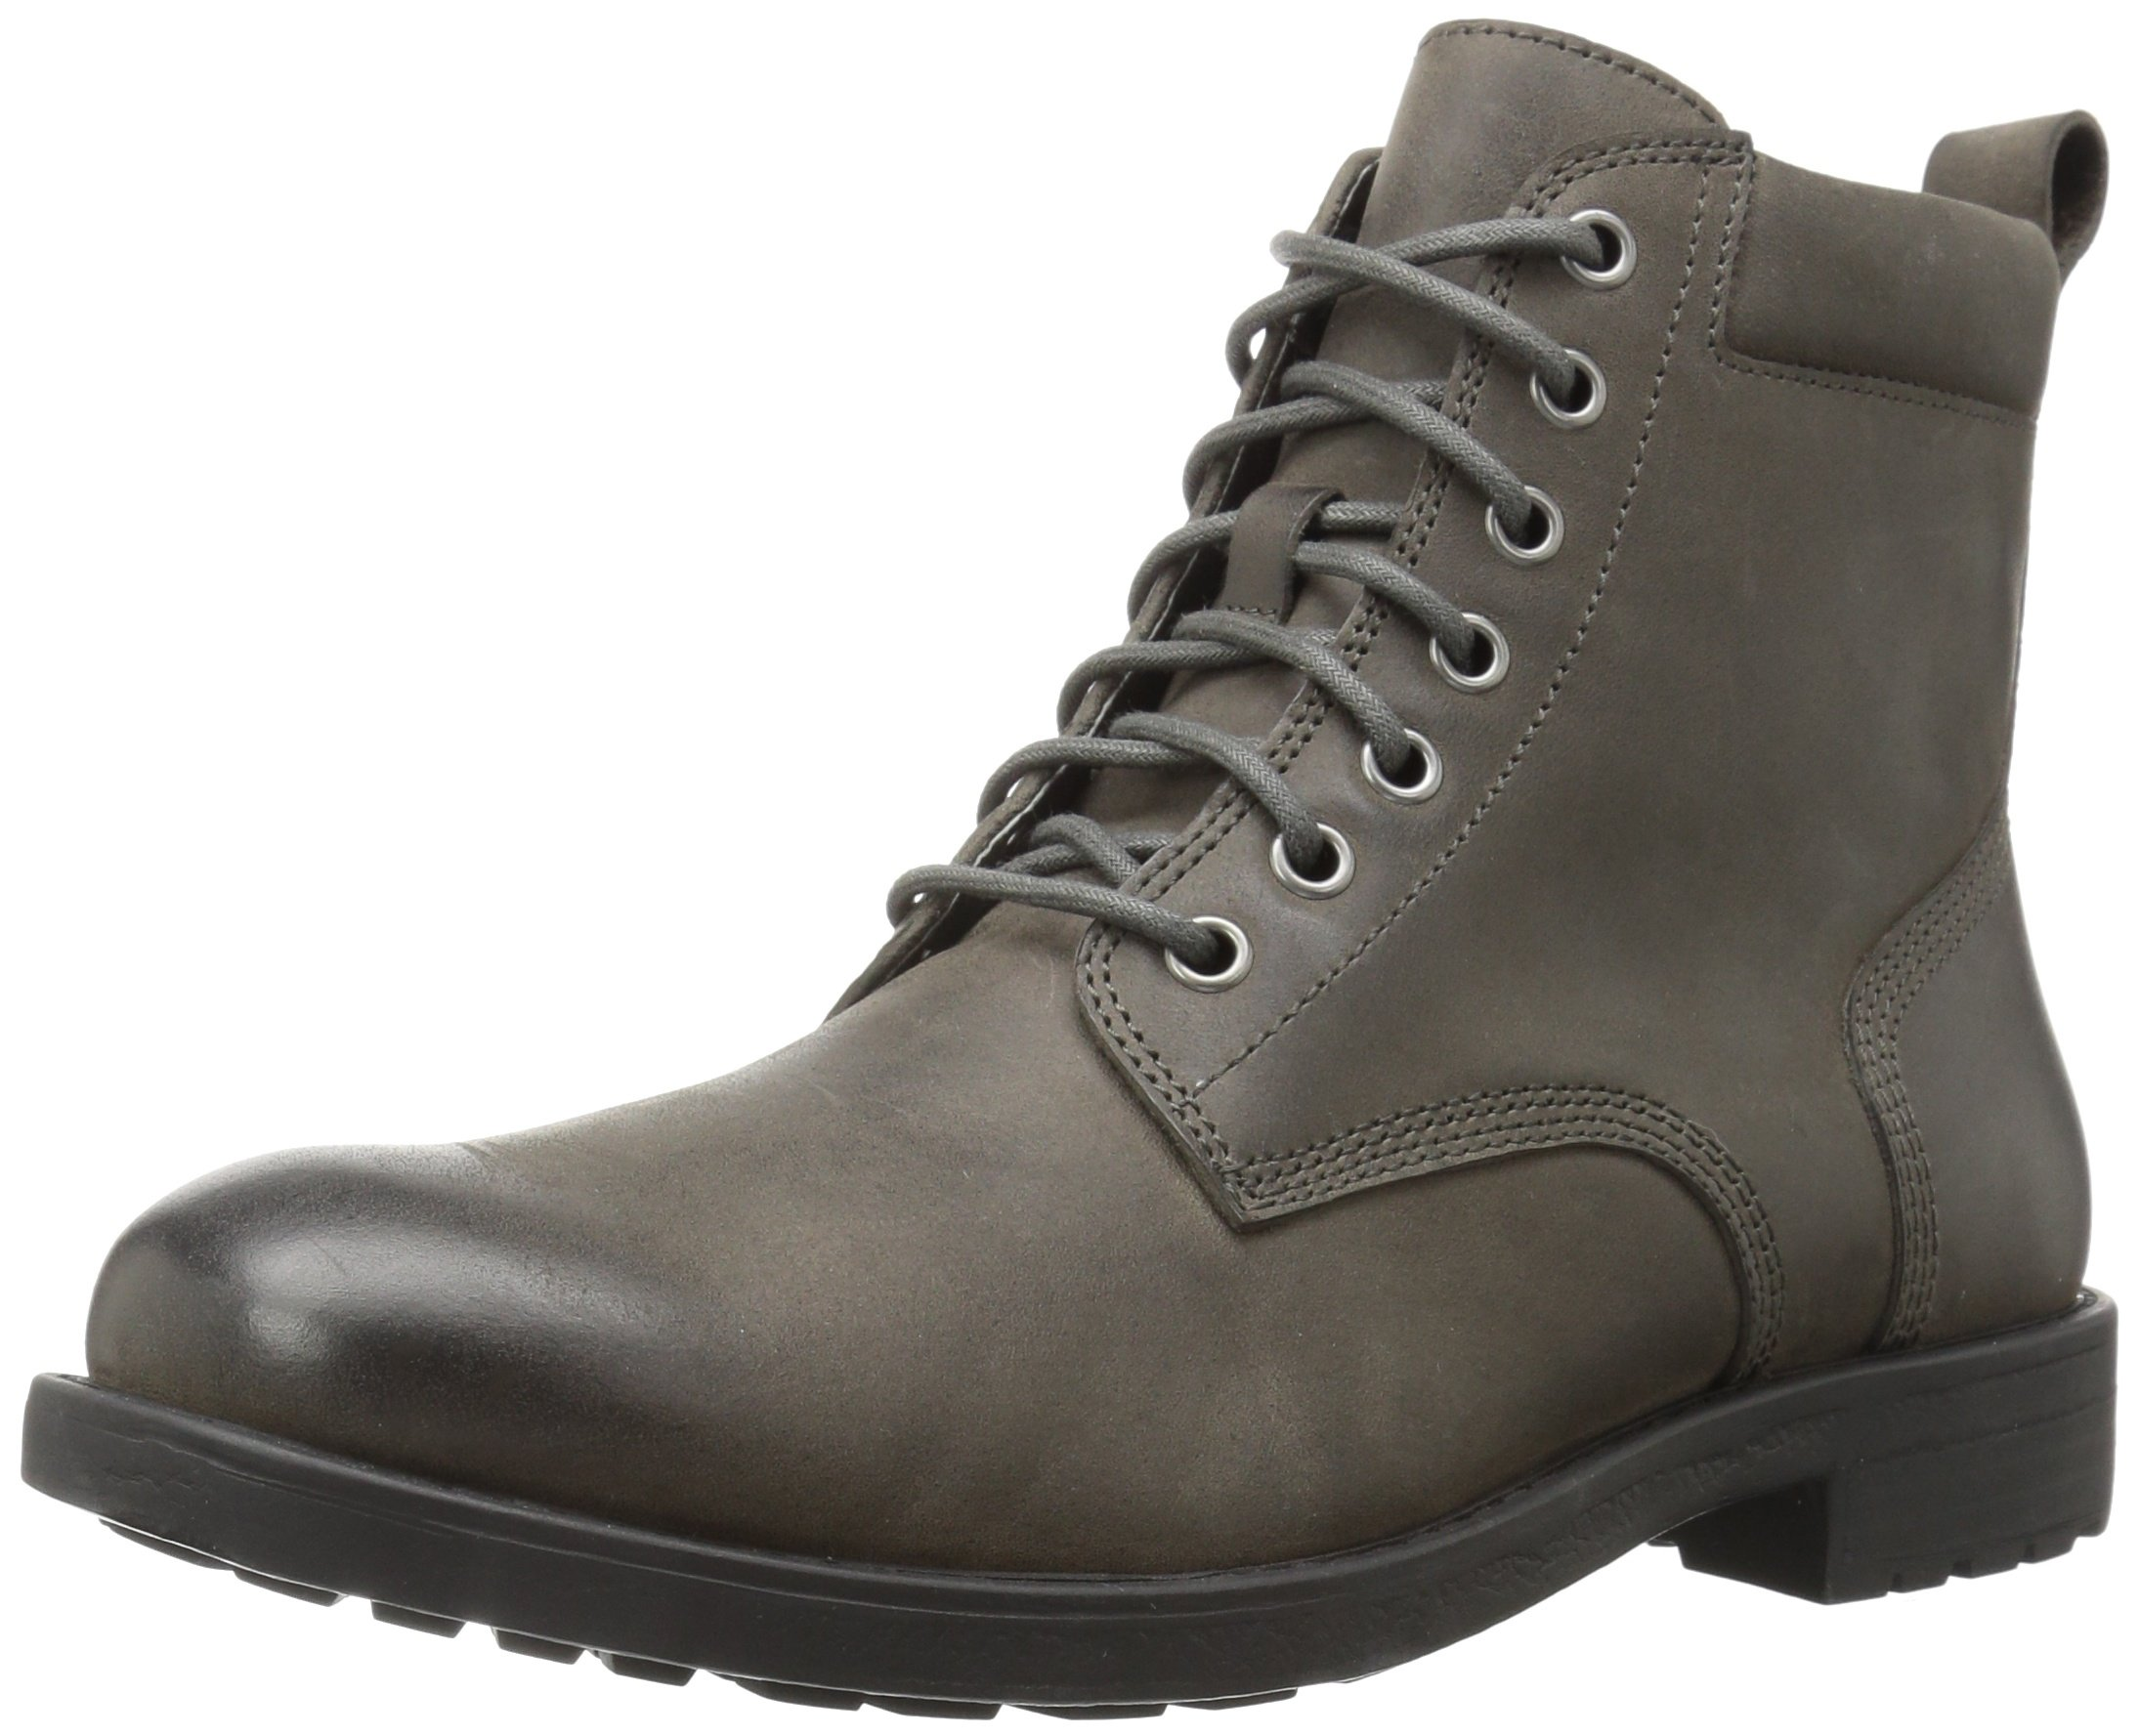 206 Collective Men's Denny Lace-up Motorcycle Boot, Charcoal Gray, 11 D US